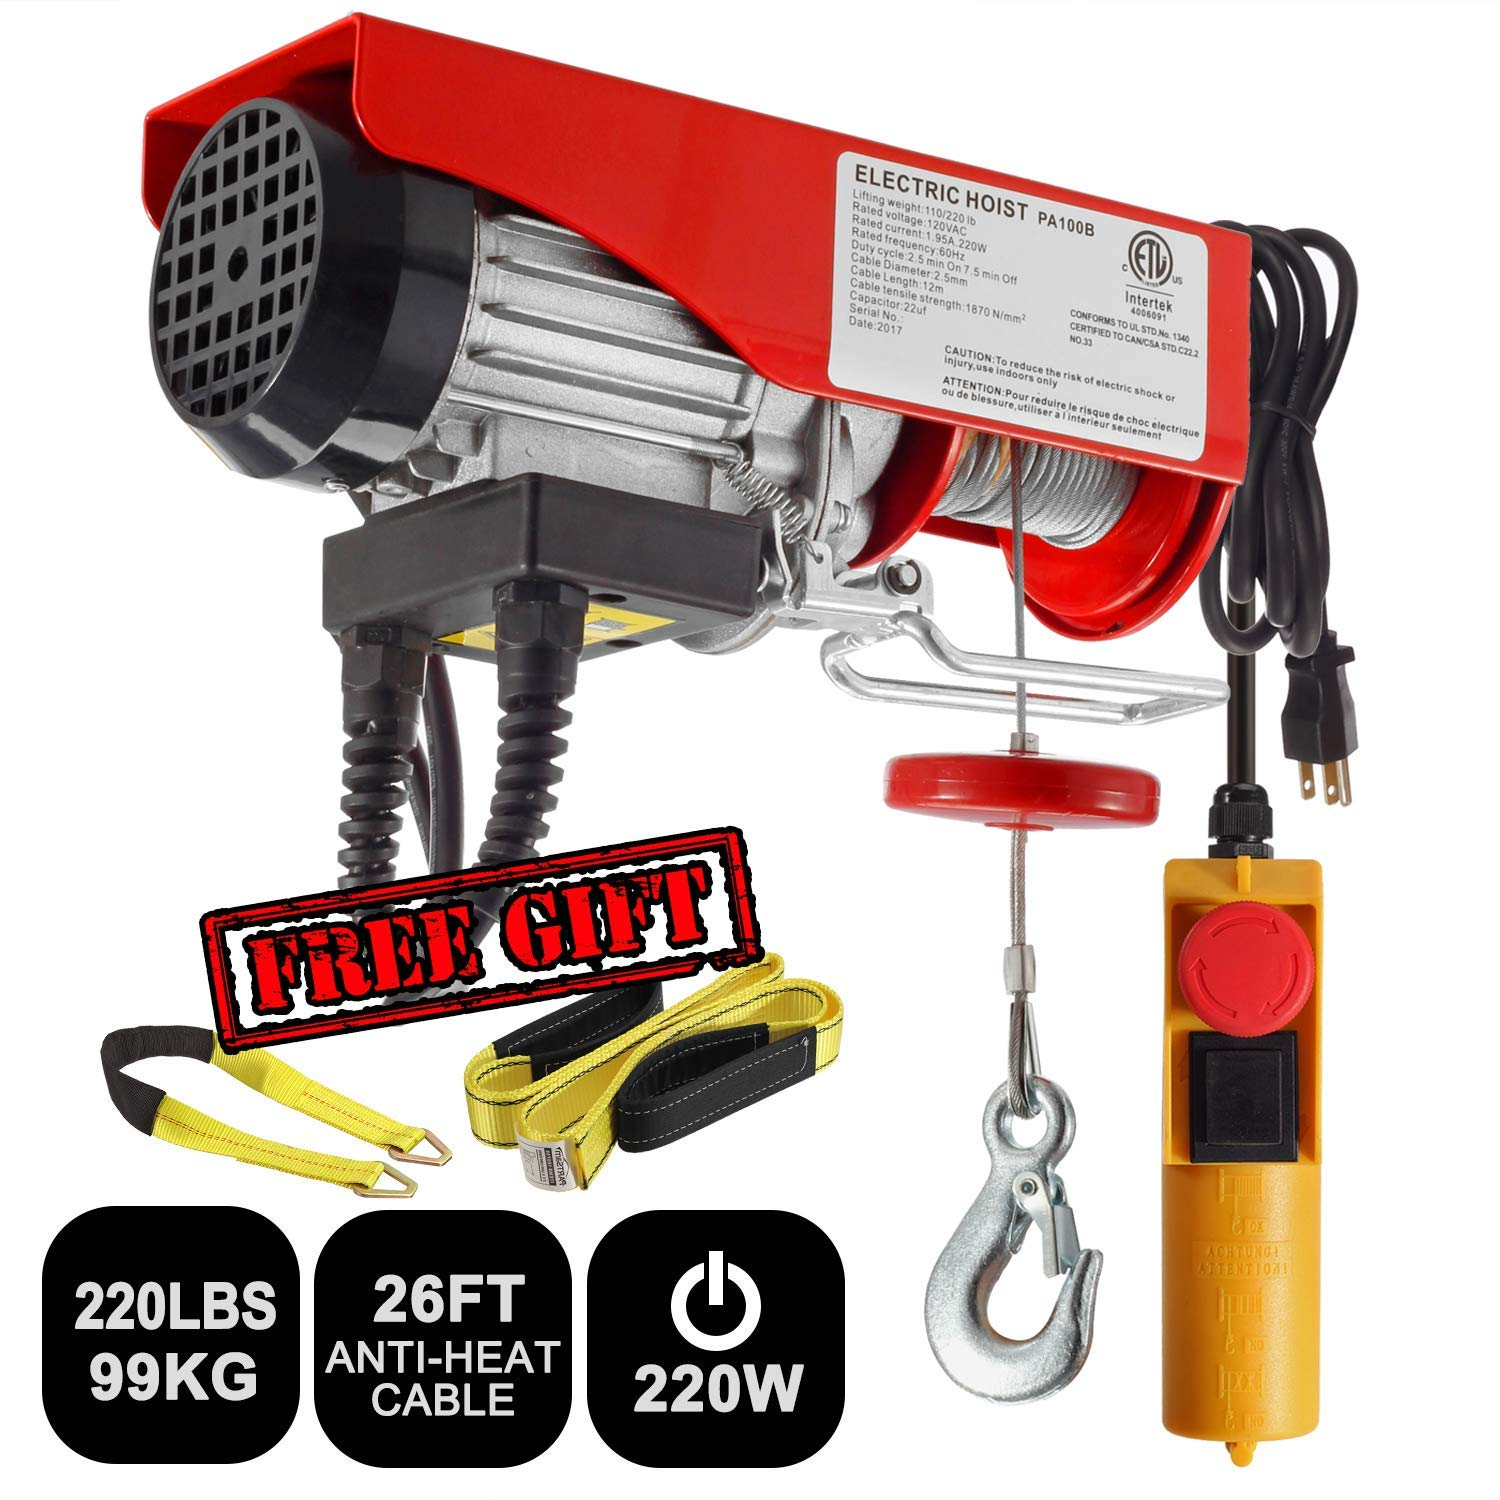 Partsam 220 lbs Lift Electric Hoist Crane Remote Control Power System, Zinc-Plated Steel Wire Overhead Crane Garage Ceiling Pulley Winch w/Premium Straps (UL/CUL Approval, w/Emergency Stop Switch) by Partsam